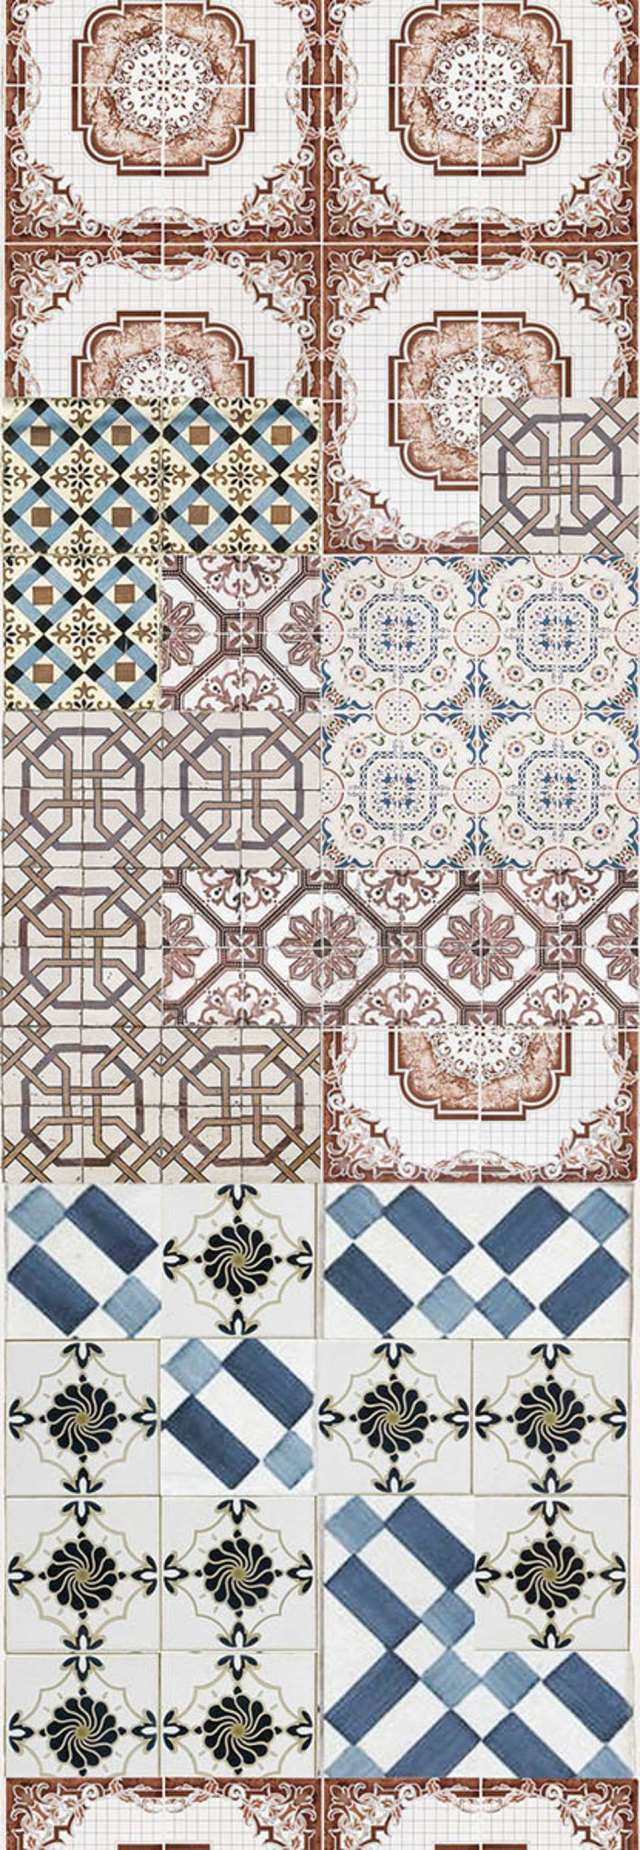 If shabby chic is for you, this design by wallpaper gurus Wall and Deco features retro tiles